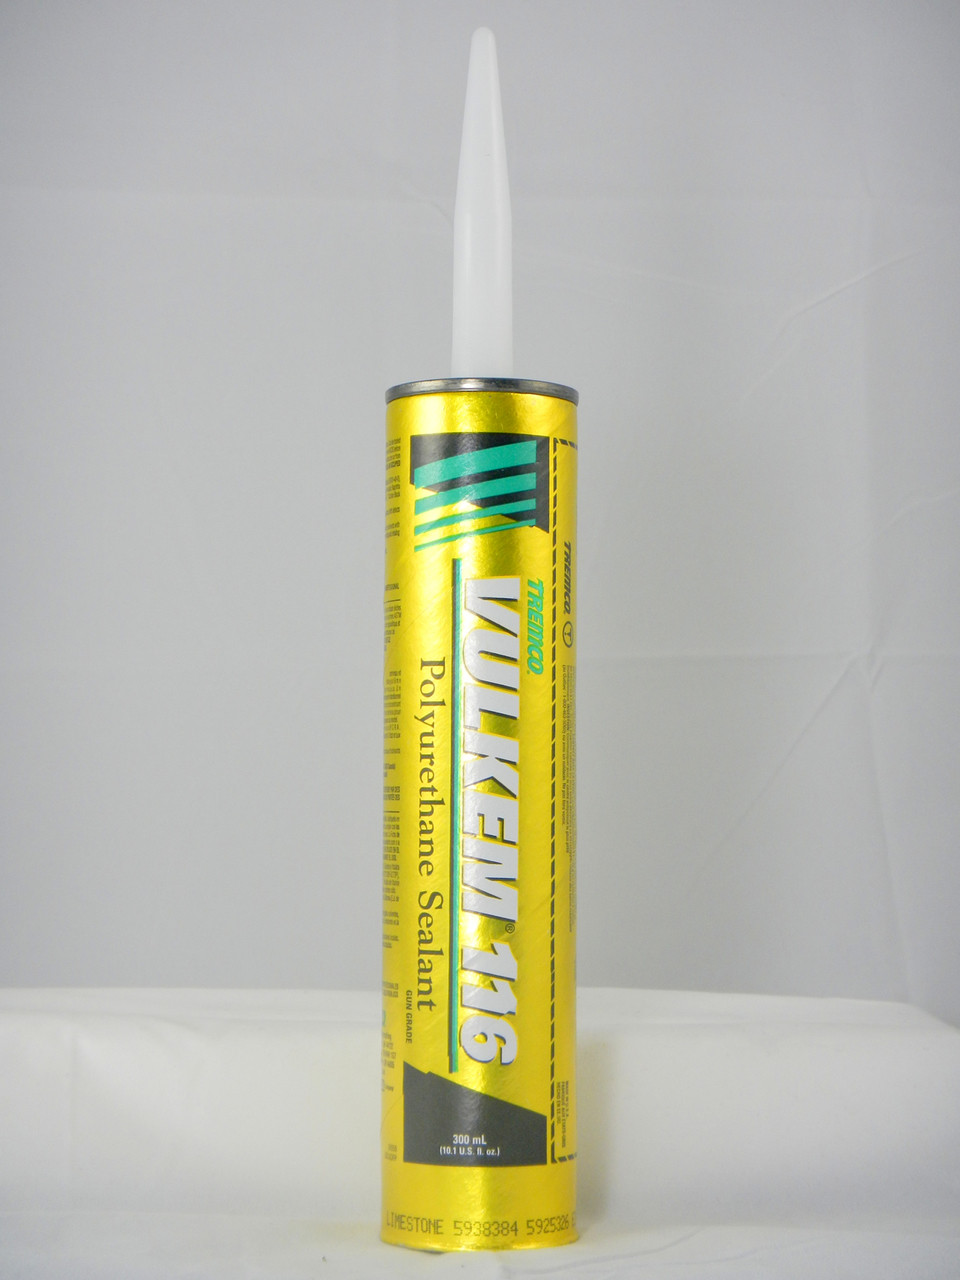 116 CAULK FOR REPAIR OF EXPANSION JOINTS, CONTROL JOINTS, BREAK JOINTS AND CRACKS ON CONCRETE